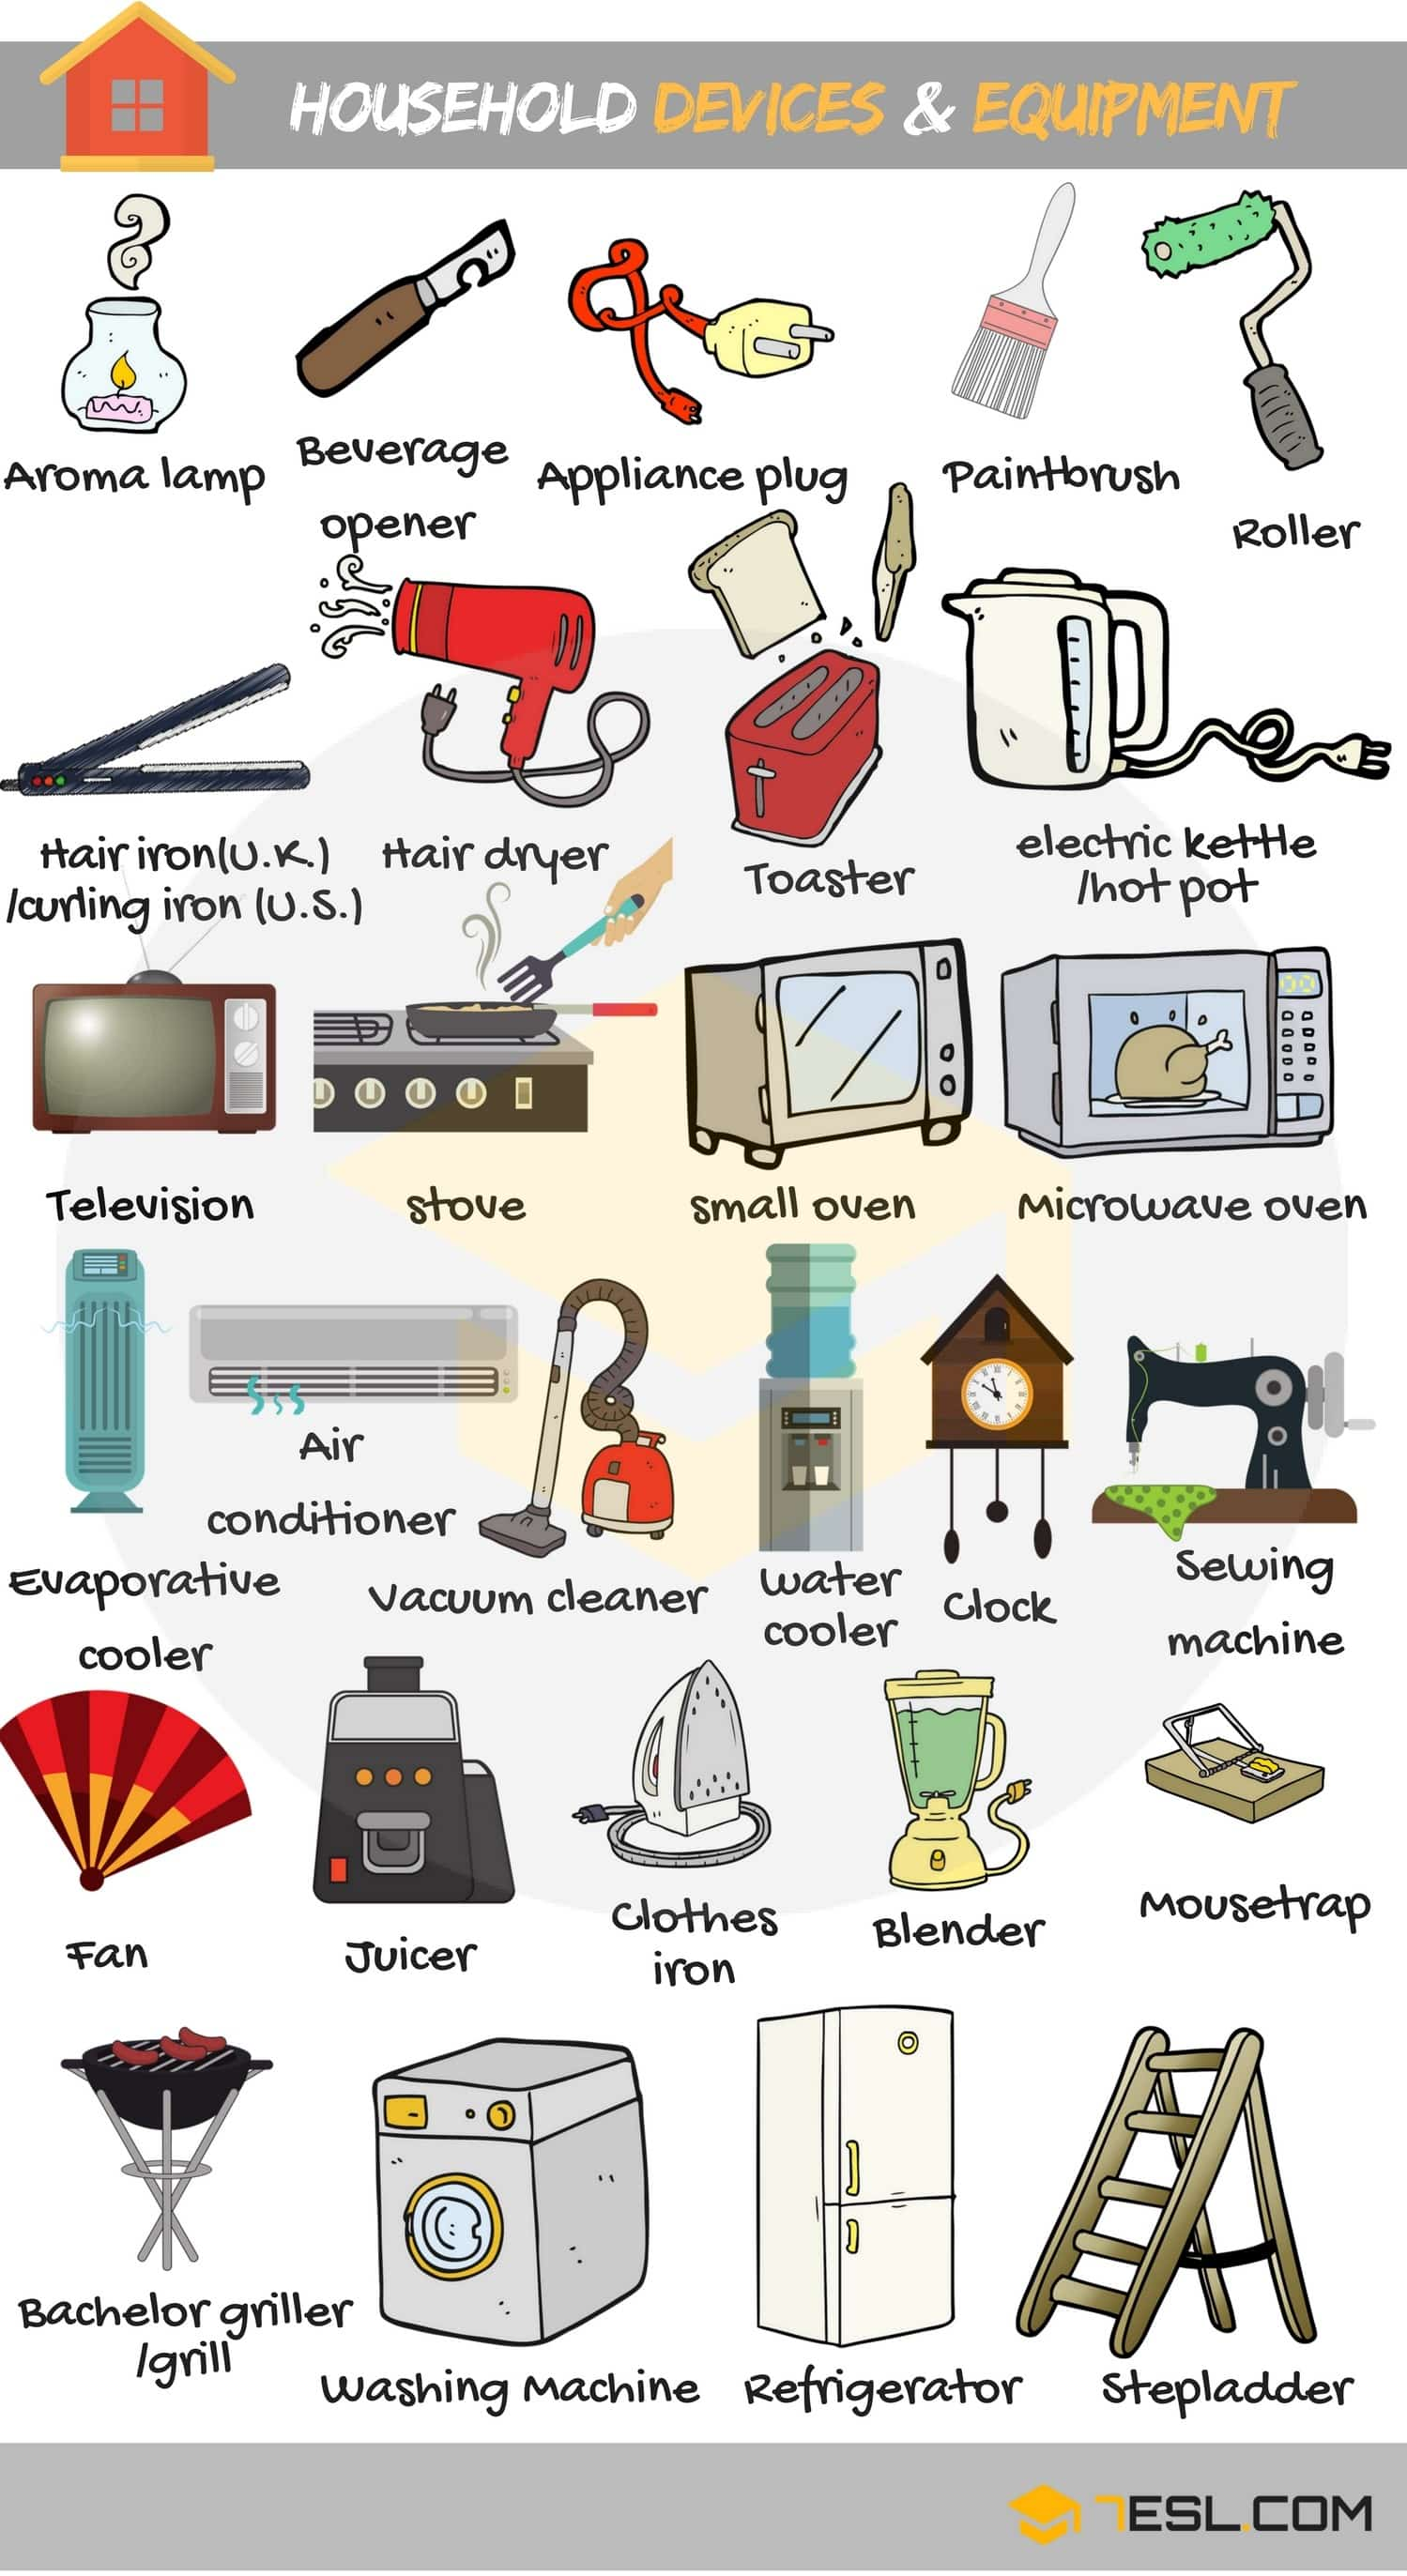 La Cuisine De Reference English Translation Household Devices And Equipment Vocabulary In English 7